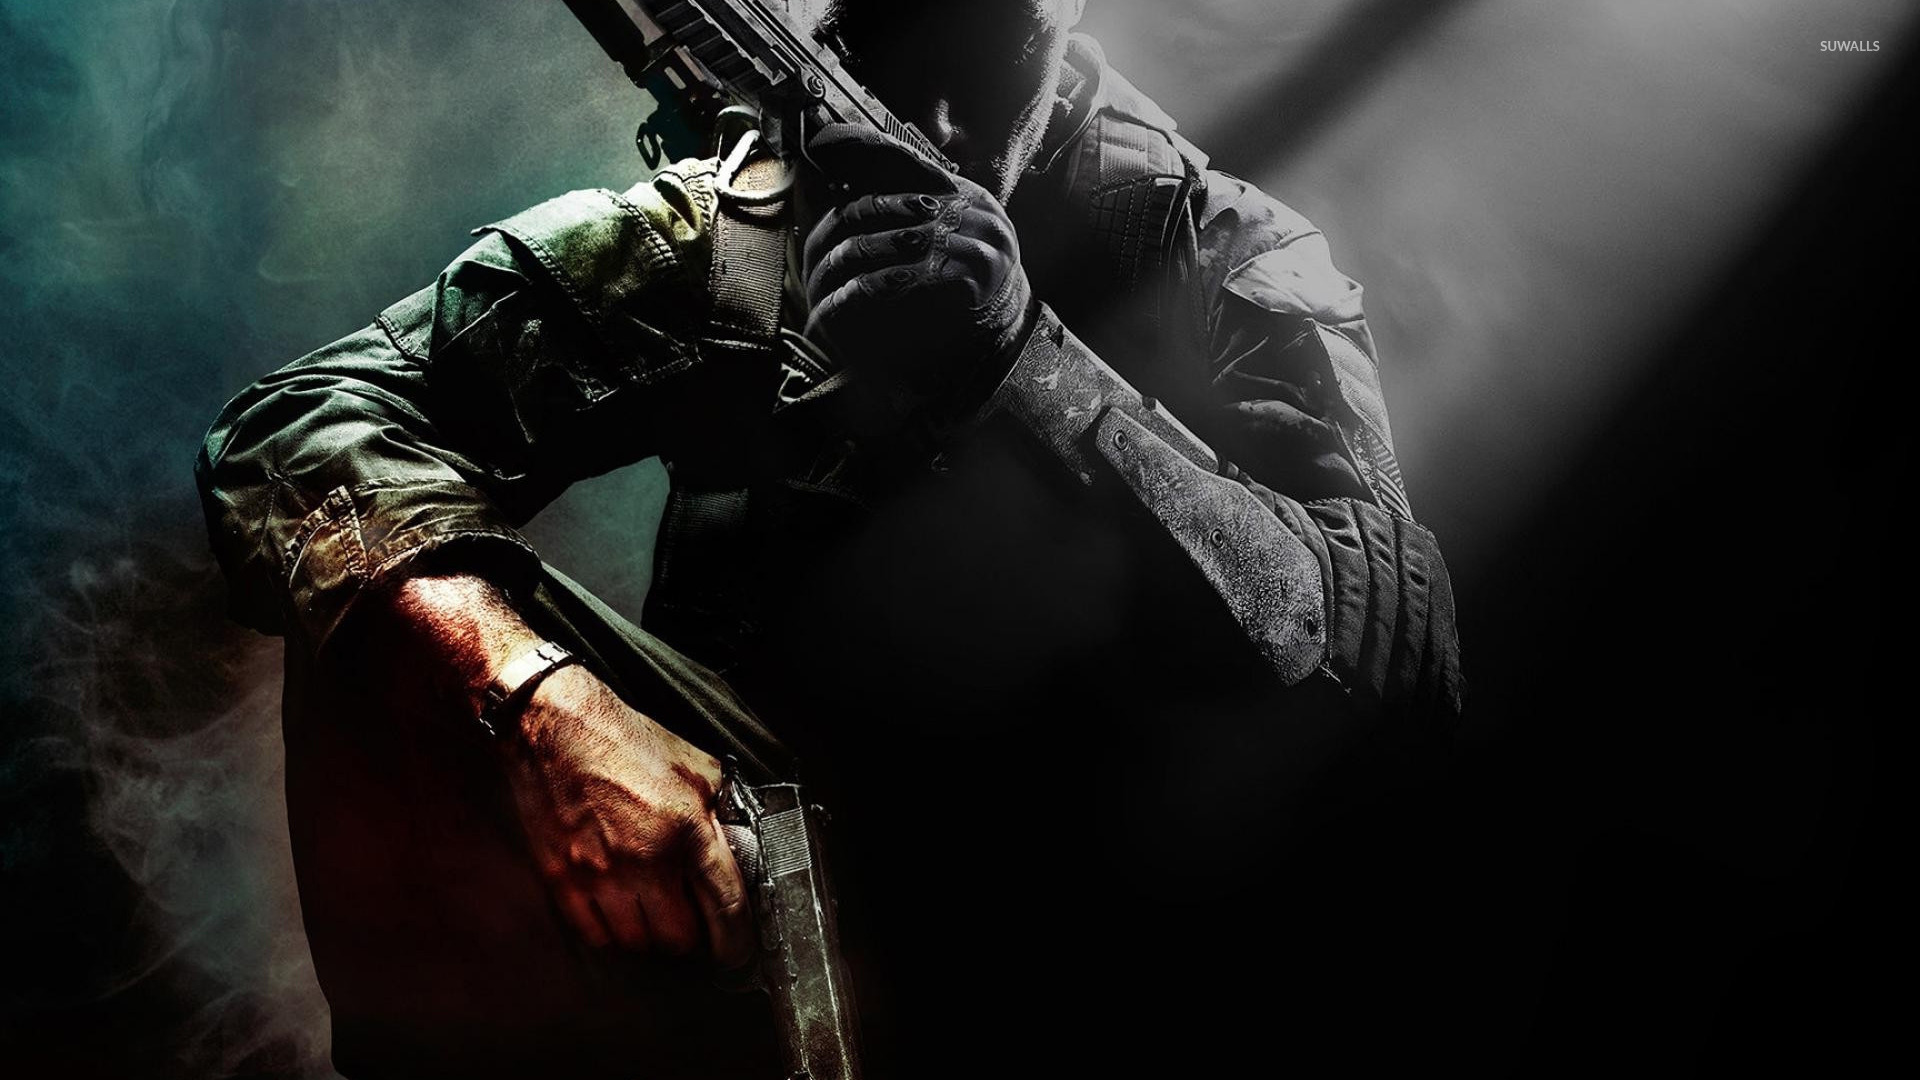 Black-Ops-X-wallpaper-wp3403314